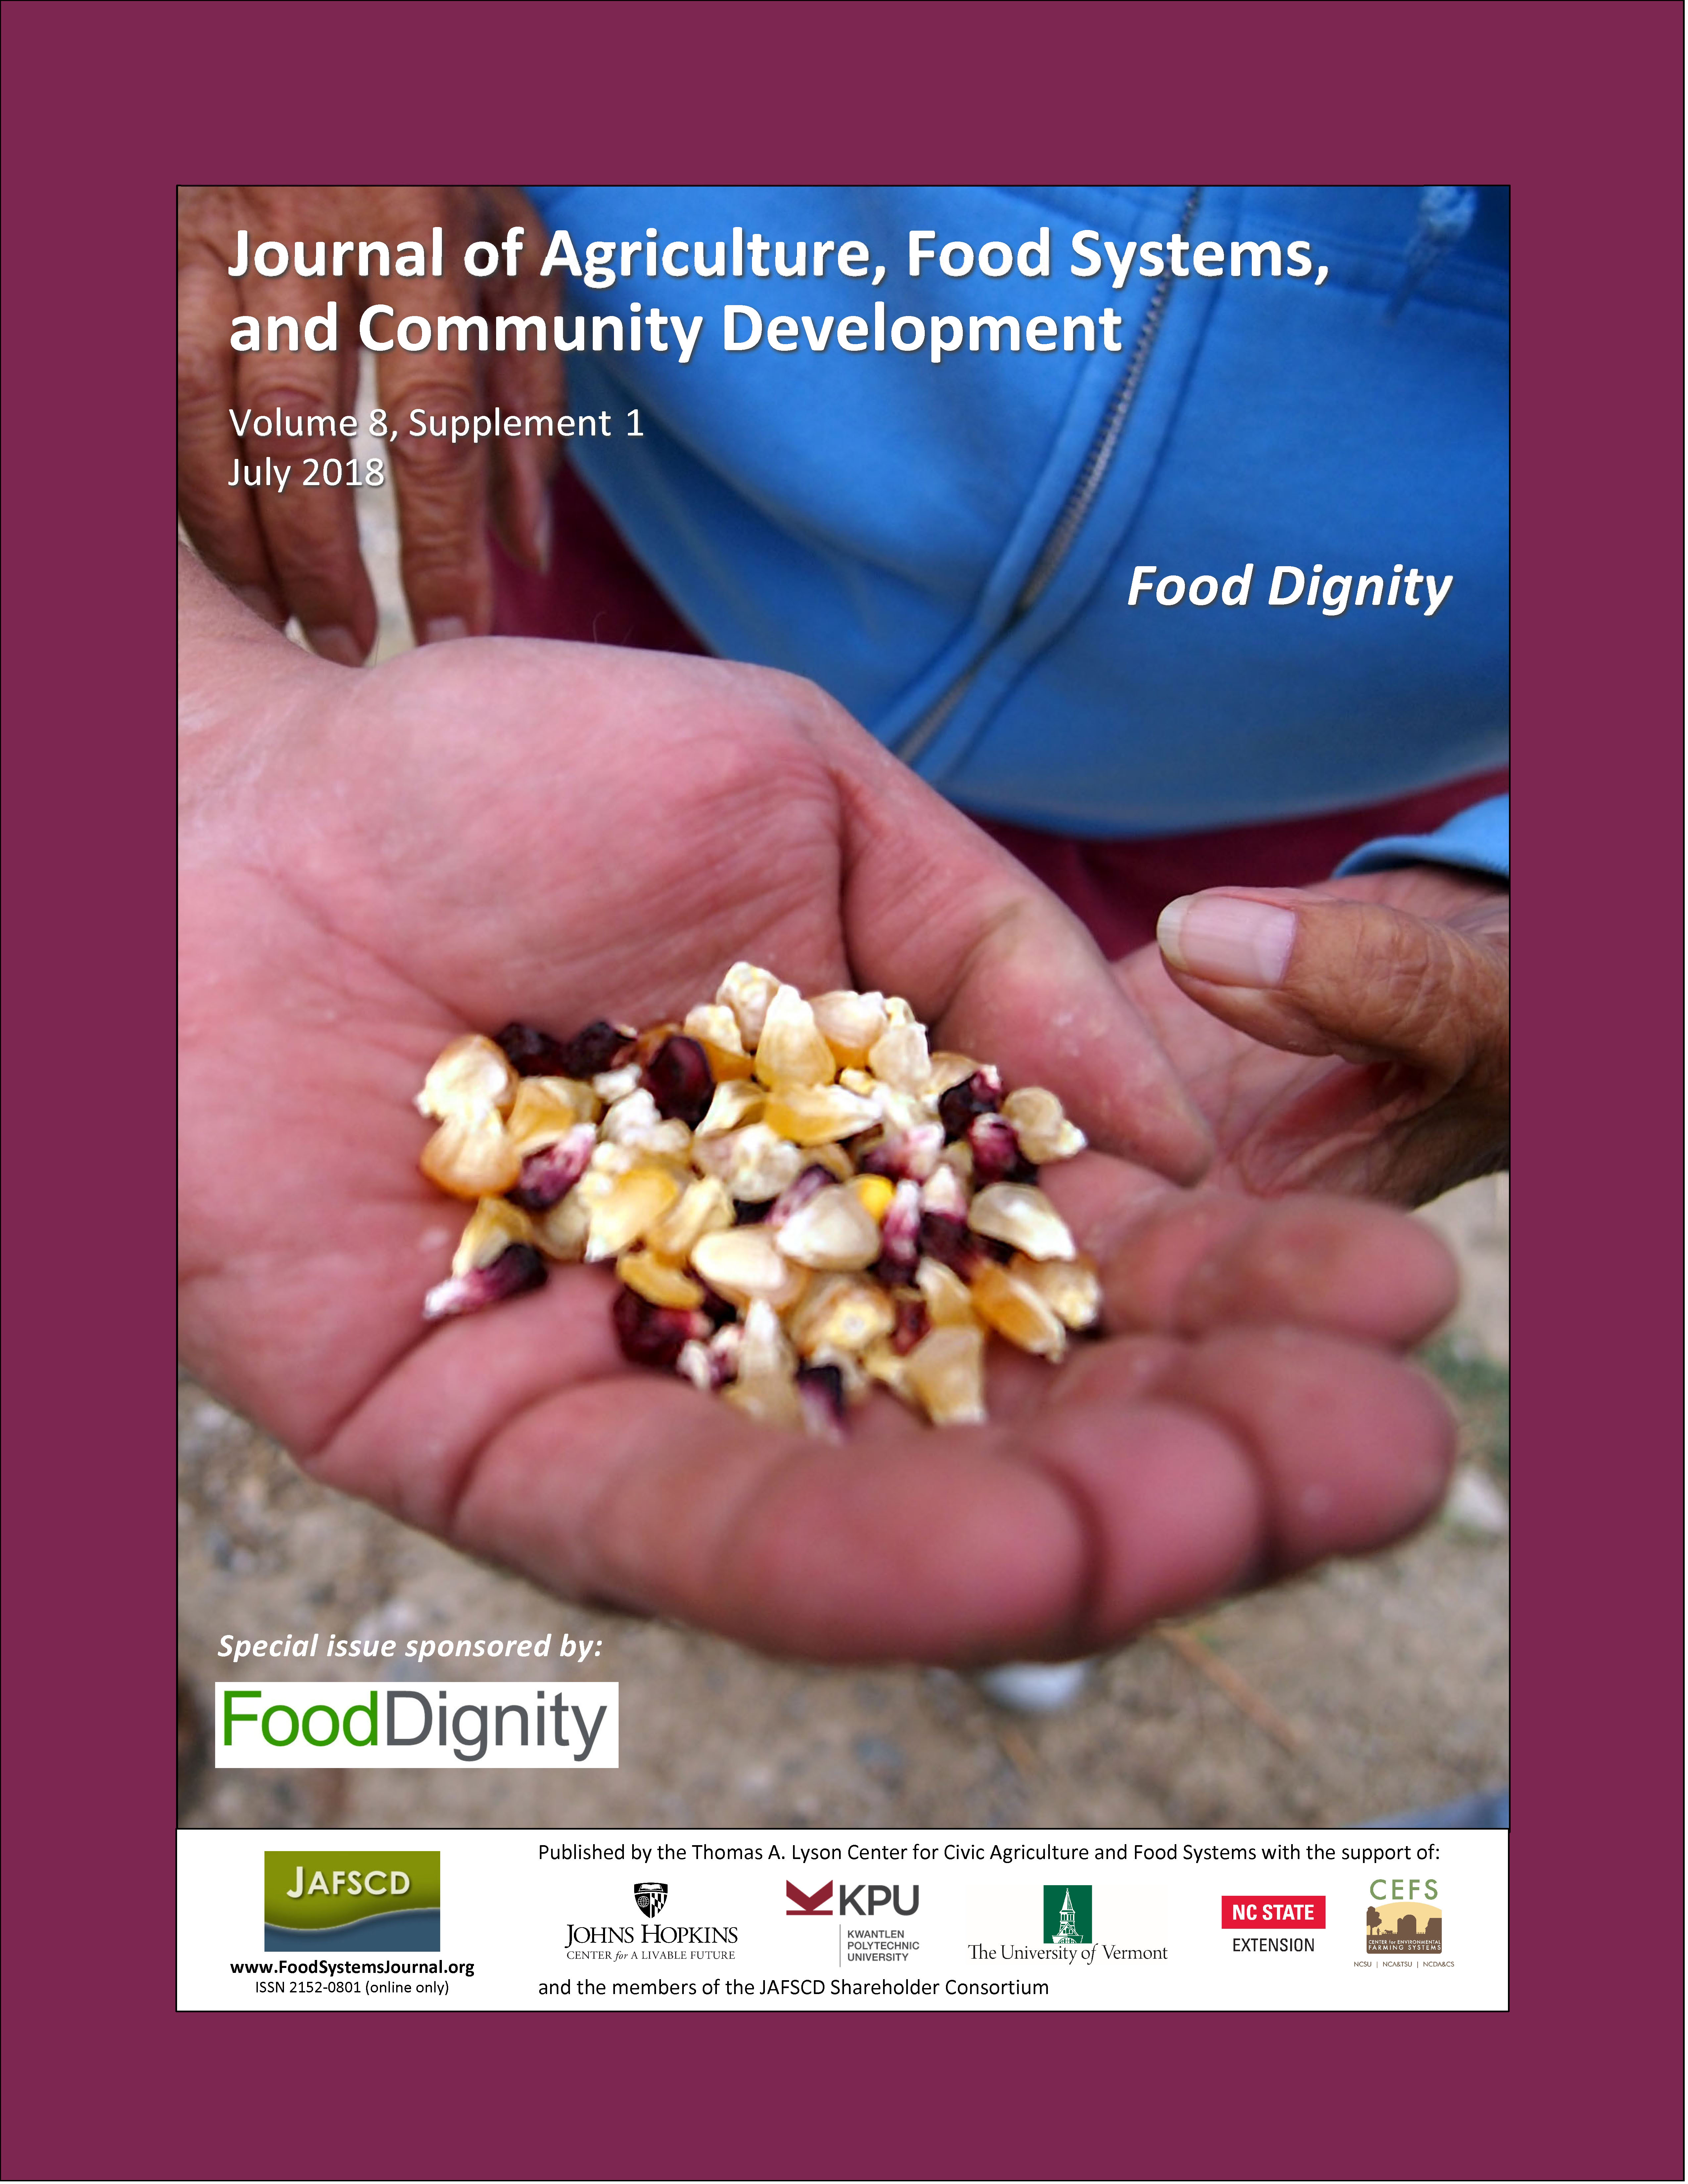 Cover of special issue on Food Dignity, with people holding heritage corn kernels